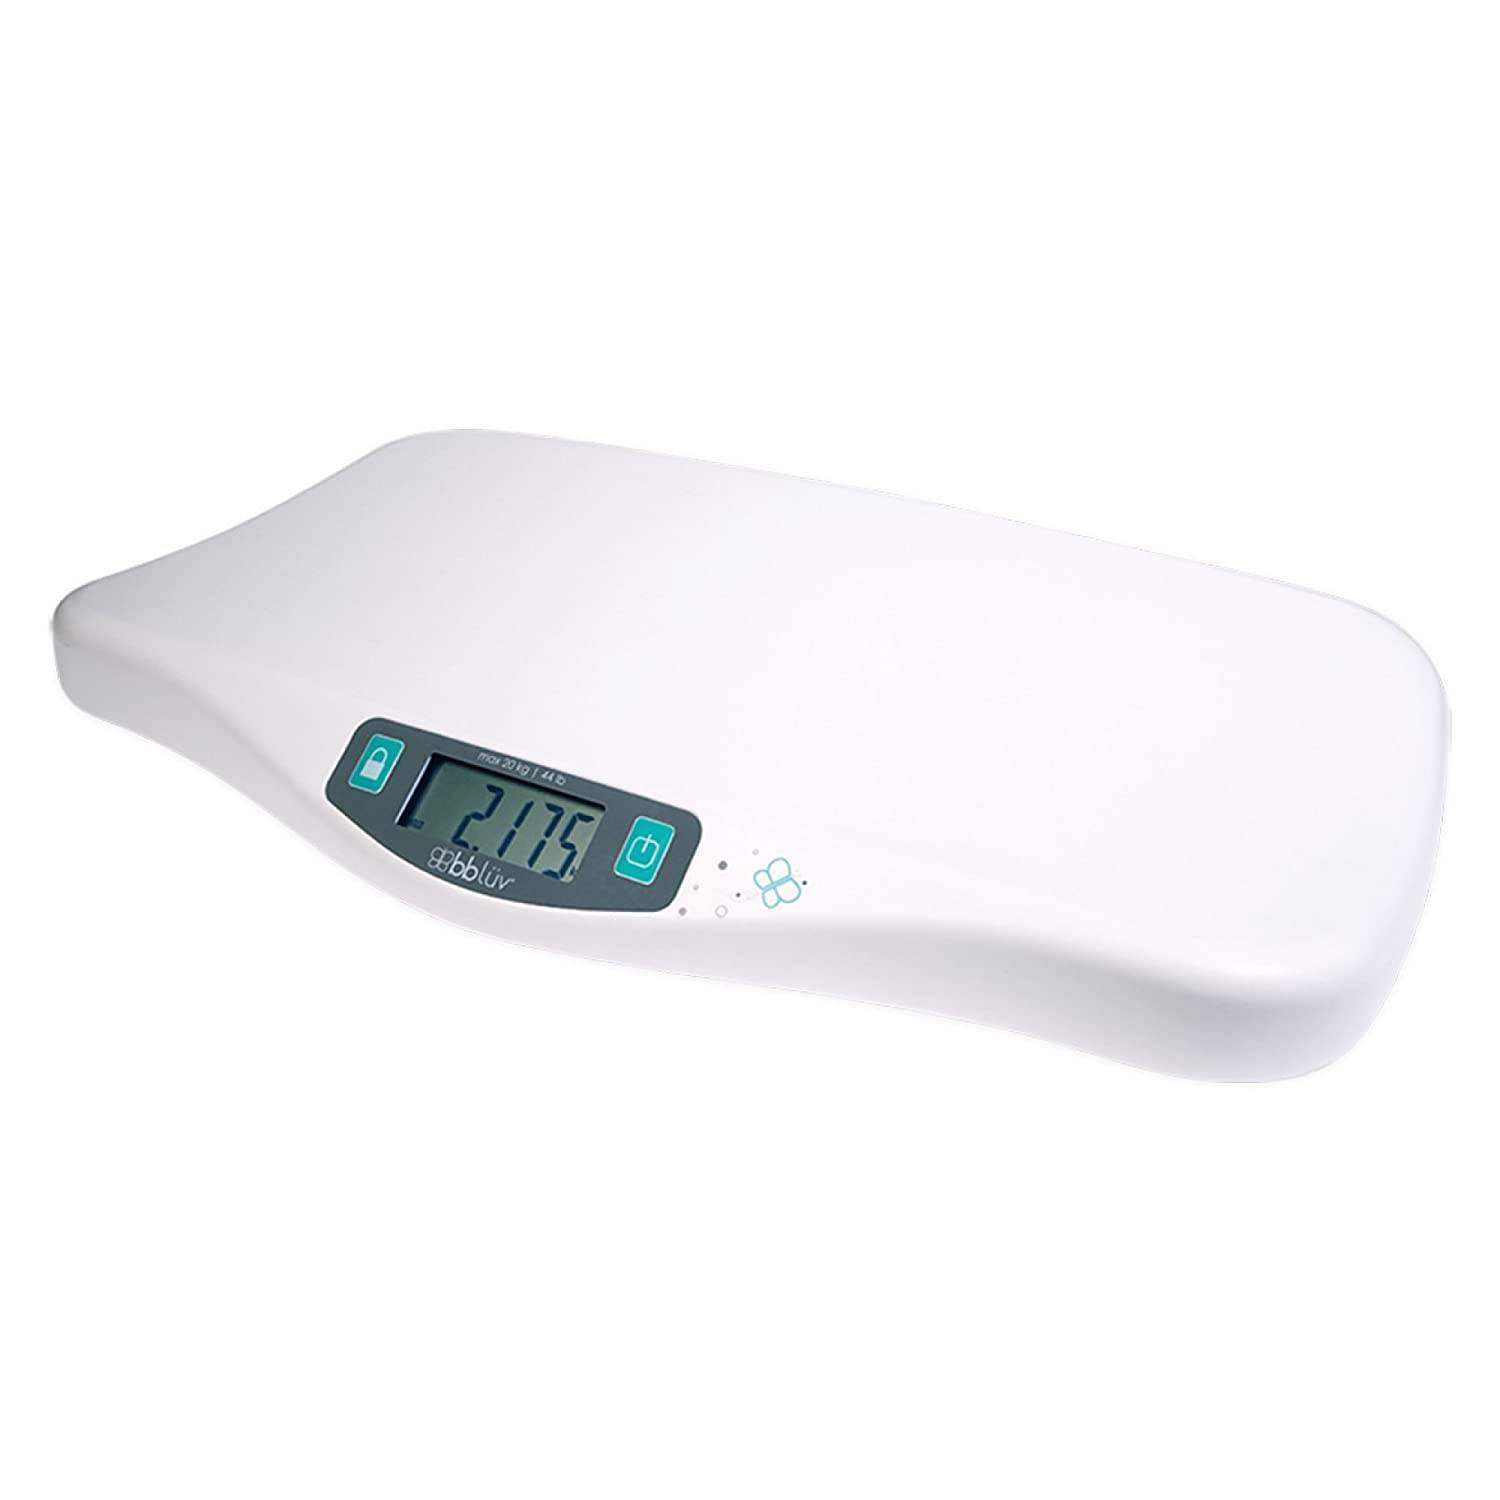 bblüv - Kilö - Smart and Precise Digital Baby Scale for Infants and Toddlers up to 44 lbs bblüv Group B0125